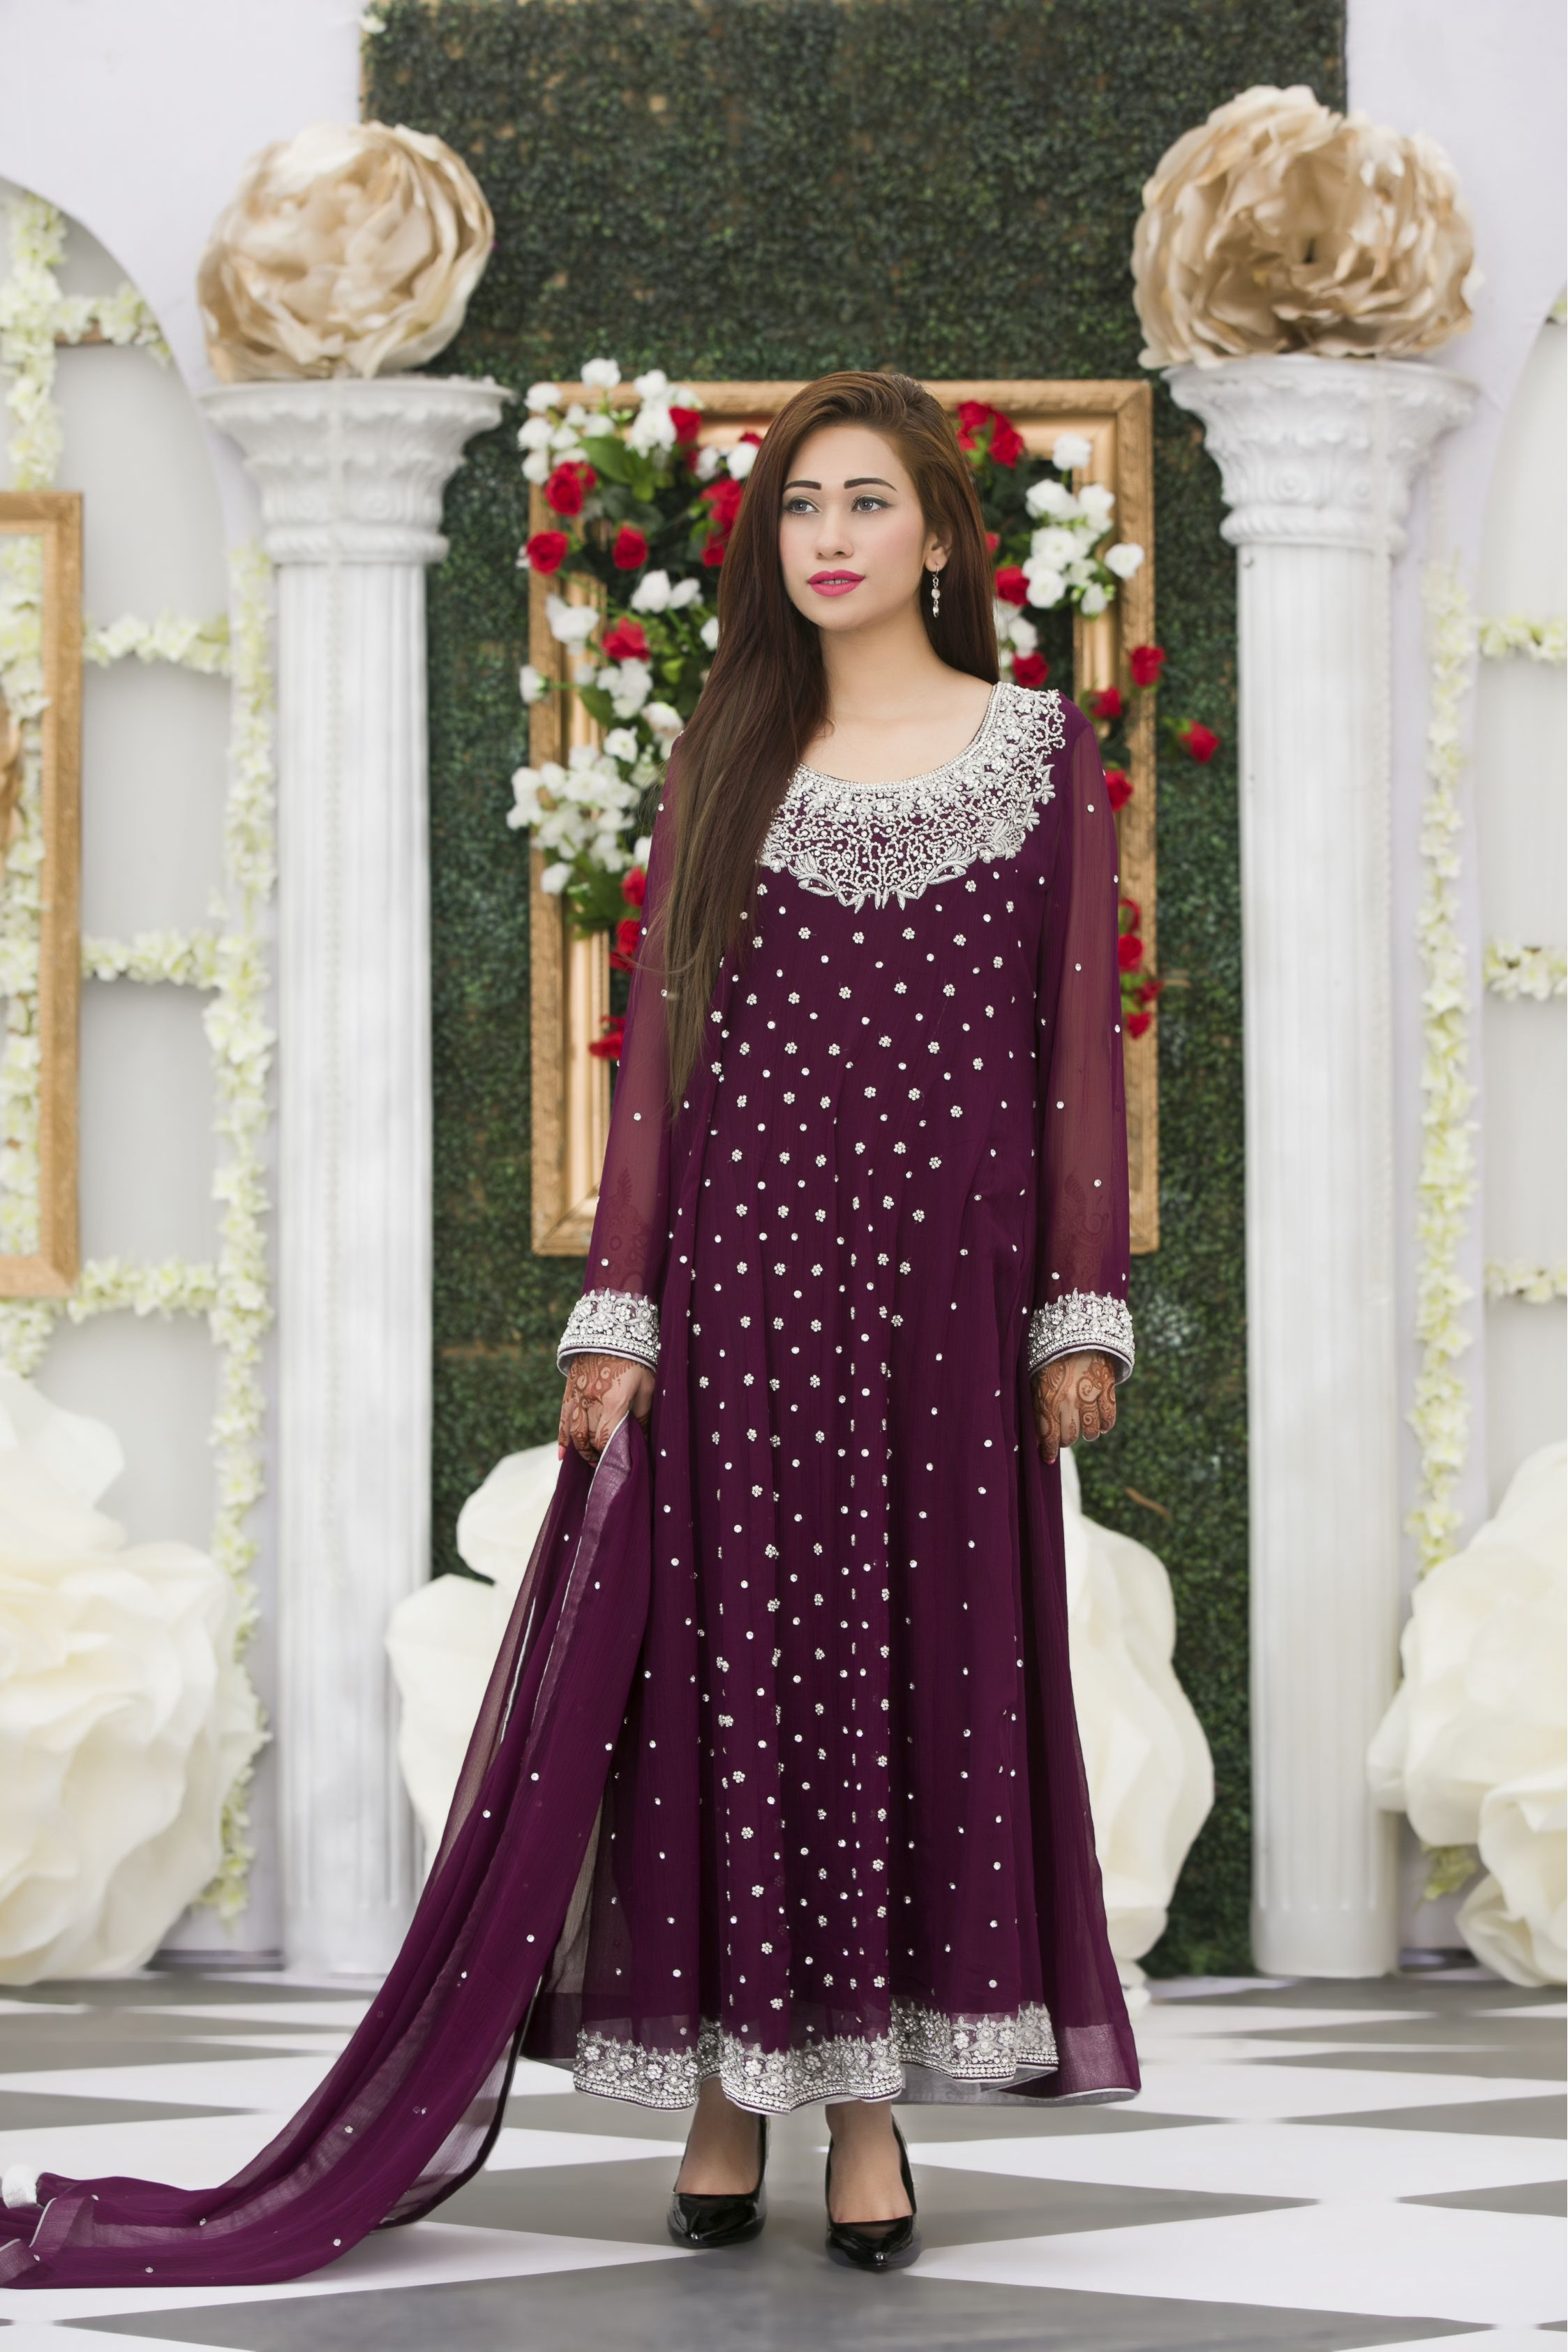 EXCLUSIVE PURPLE BRIDAL DRESS